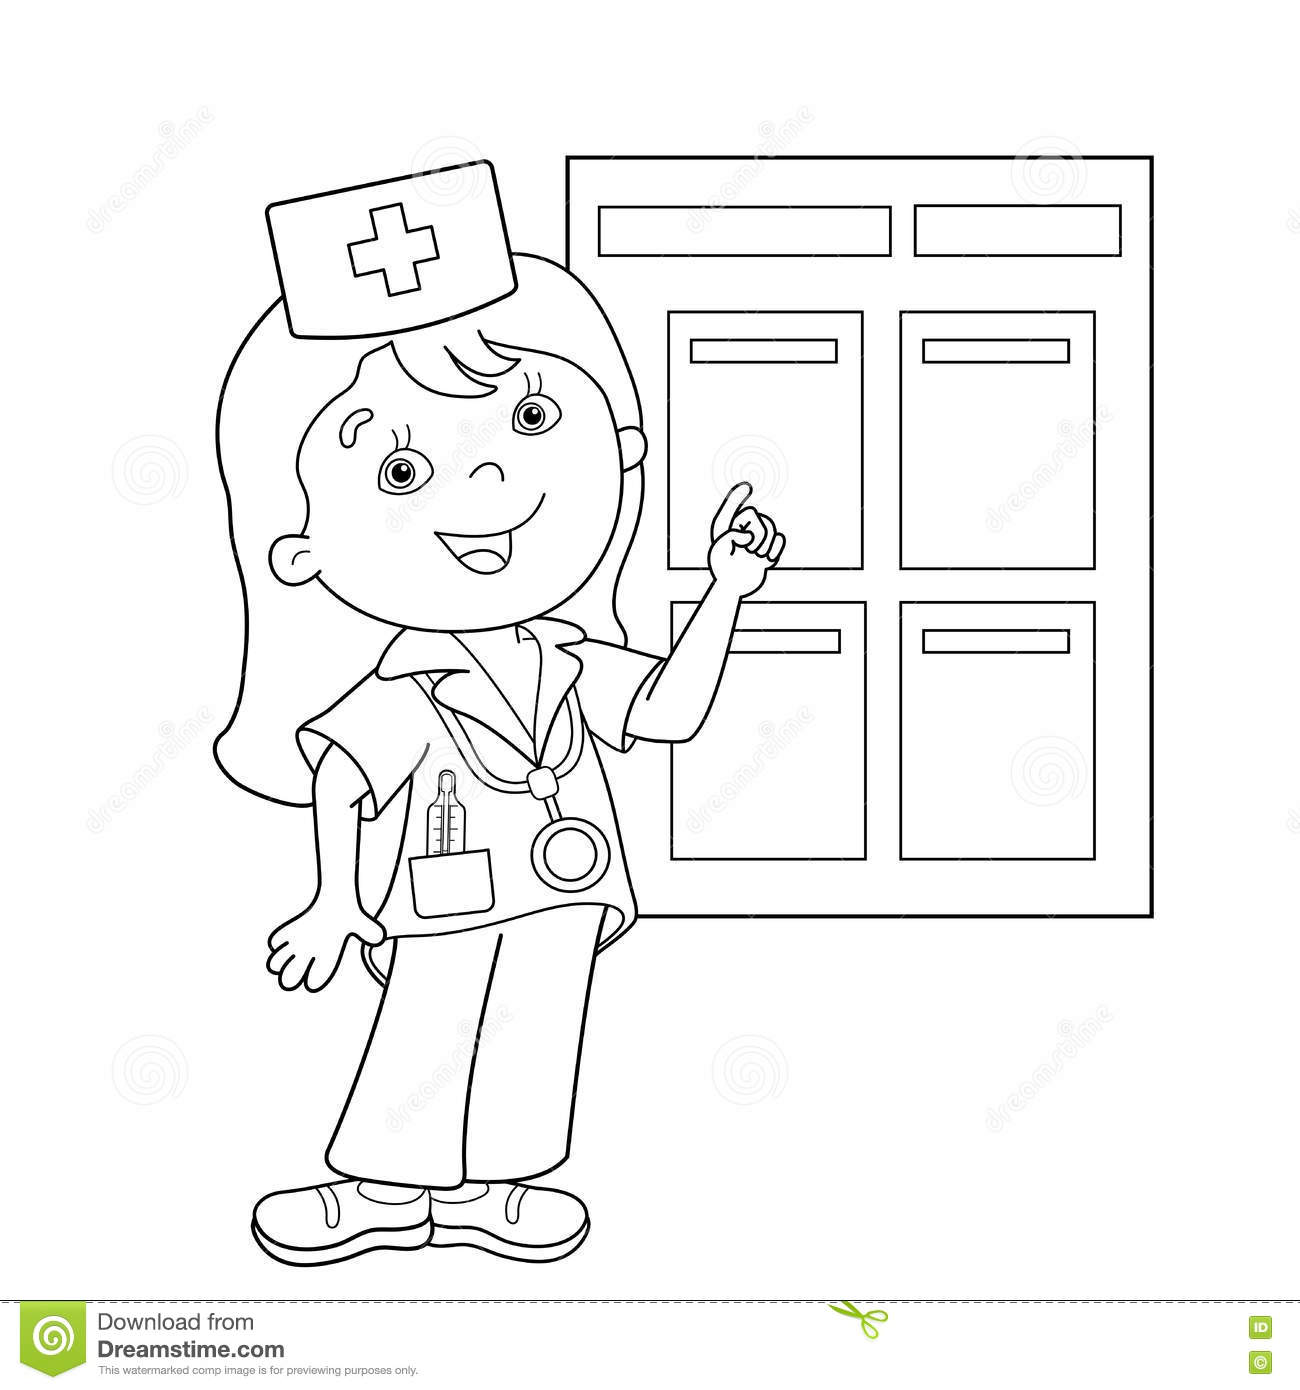 Coloring Page Outline Of Cartoon Doctor Royalty Free Stock Images